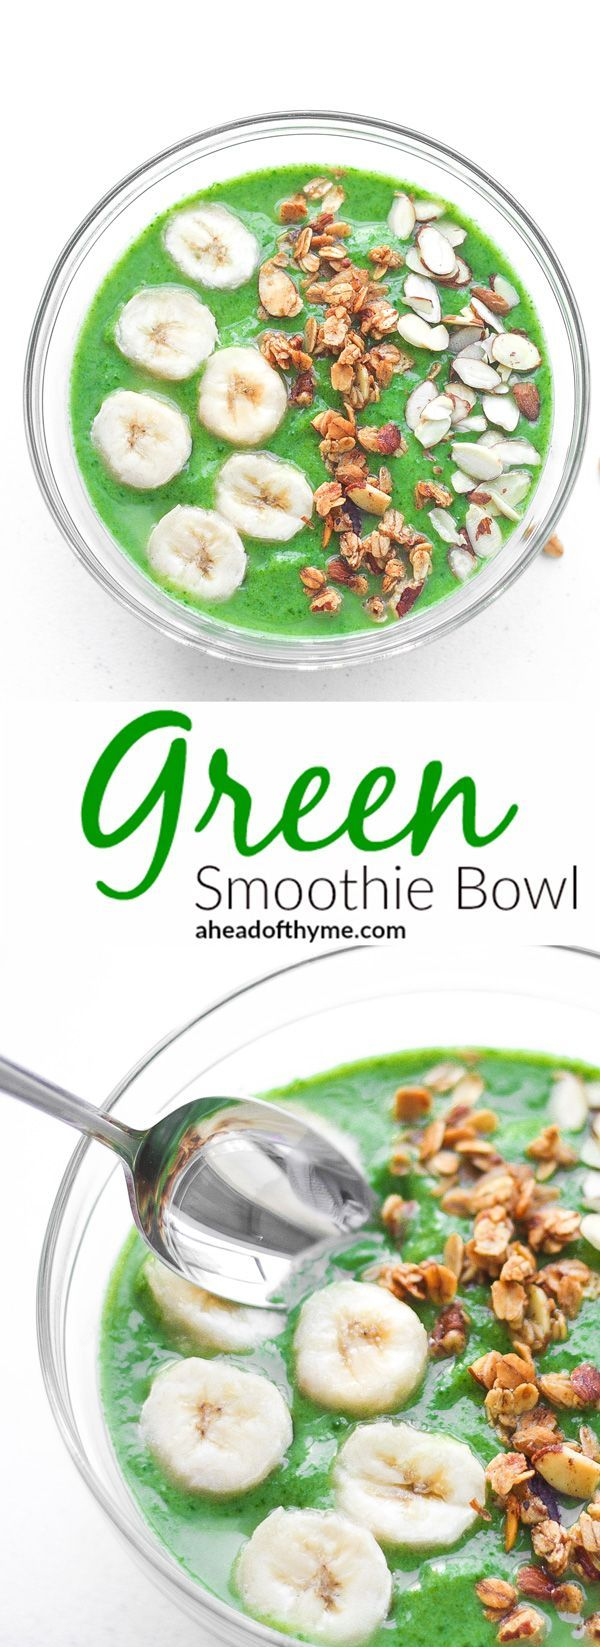 Green Smoothie Bowl: Start your morning right with a delicious, nutritious green smoothie bowl packed with spinach, avocado and banana. Quick and easy to make | aheadofthyme.com via @aheadofthyme